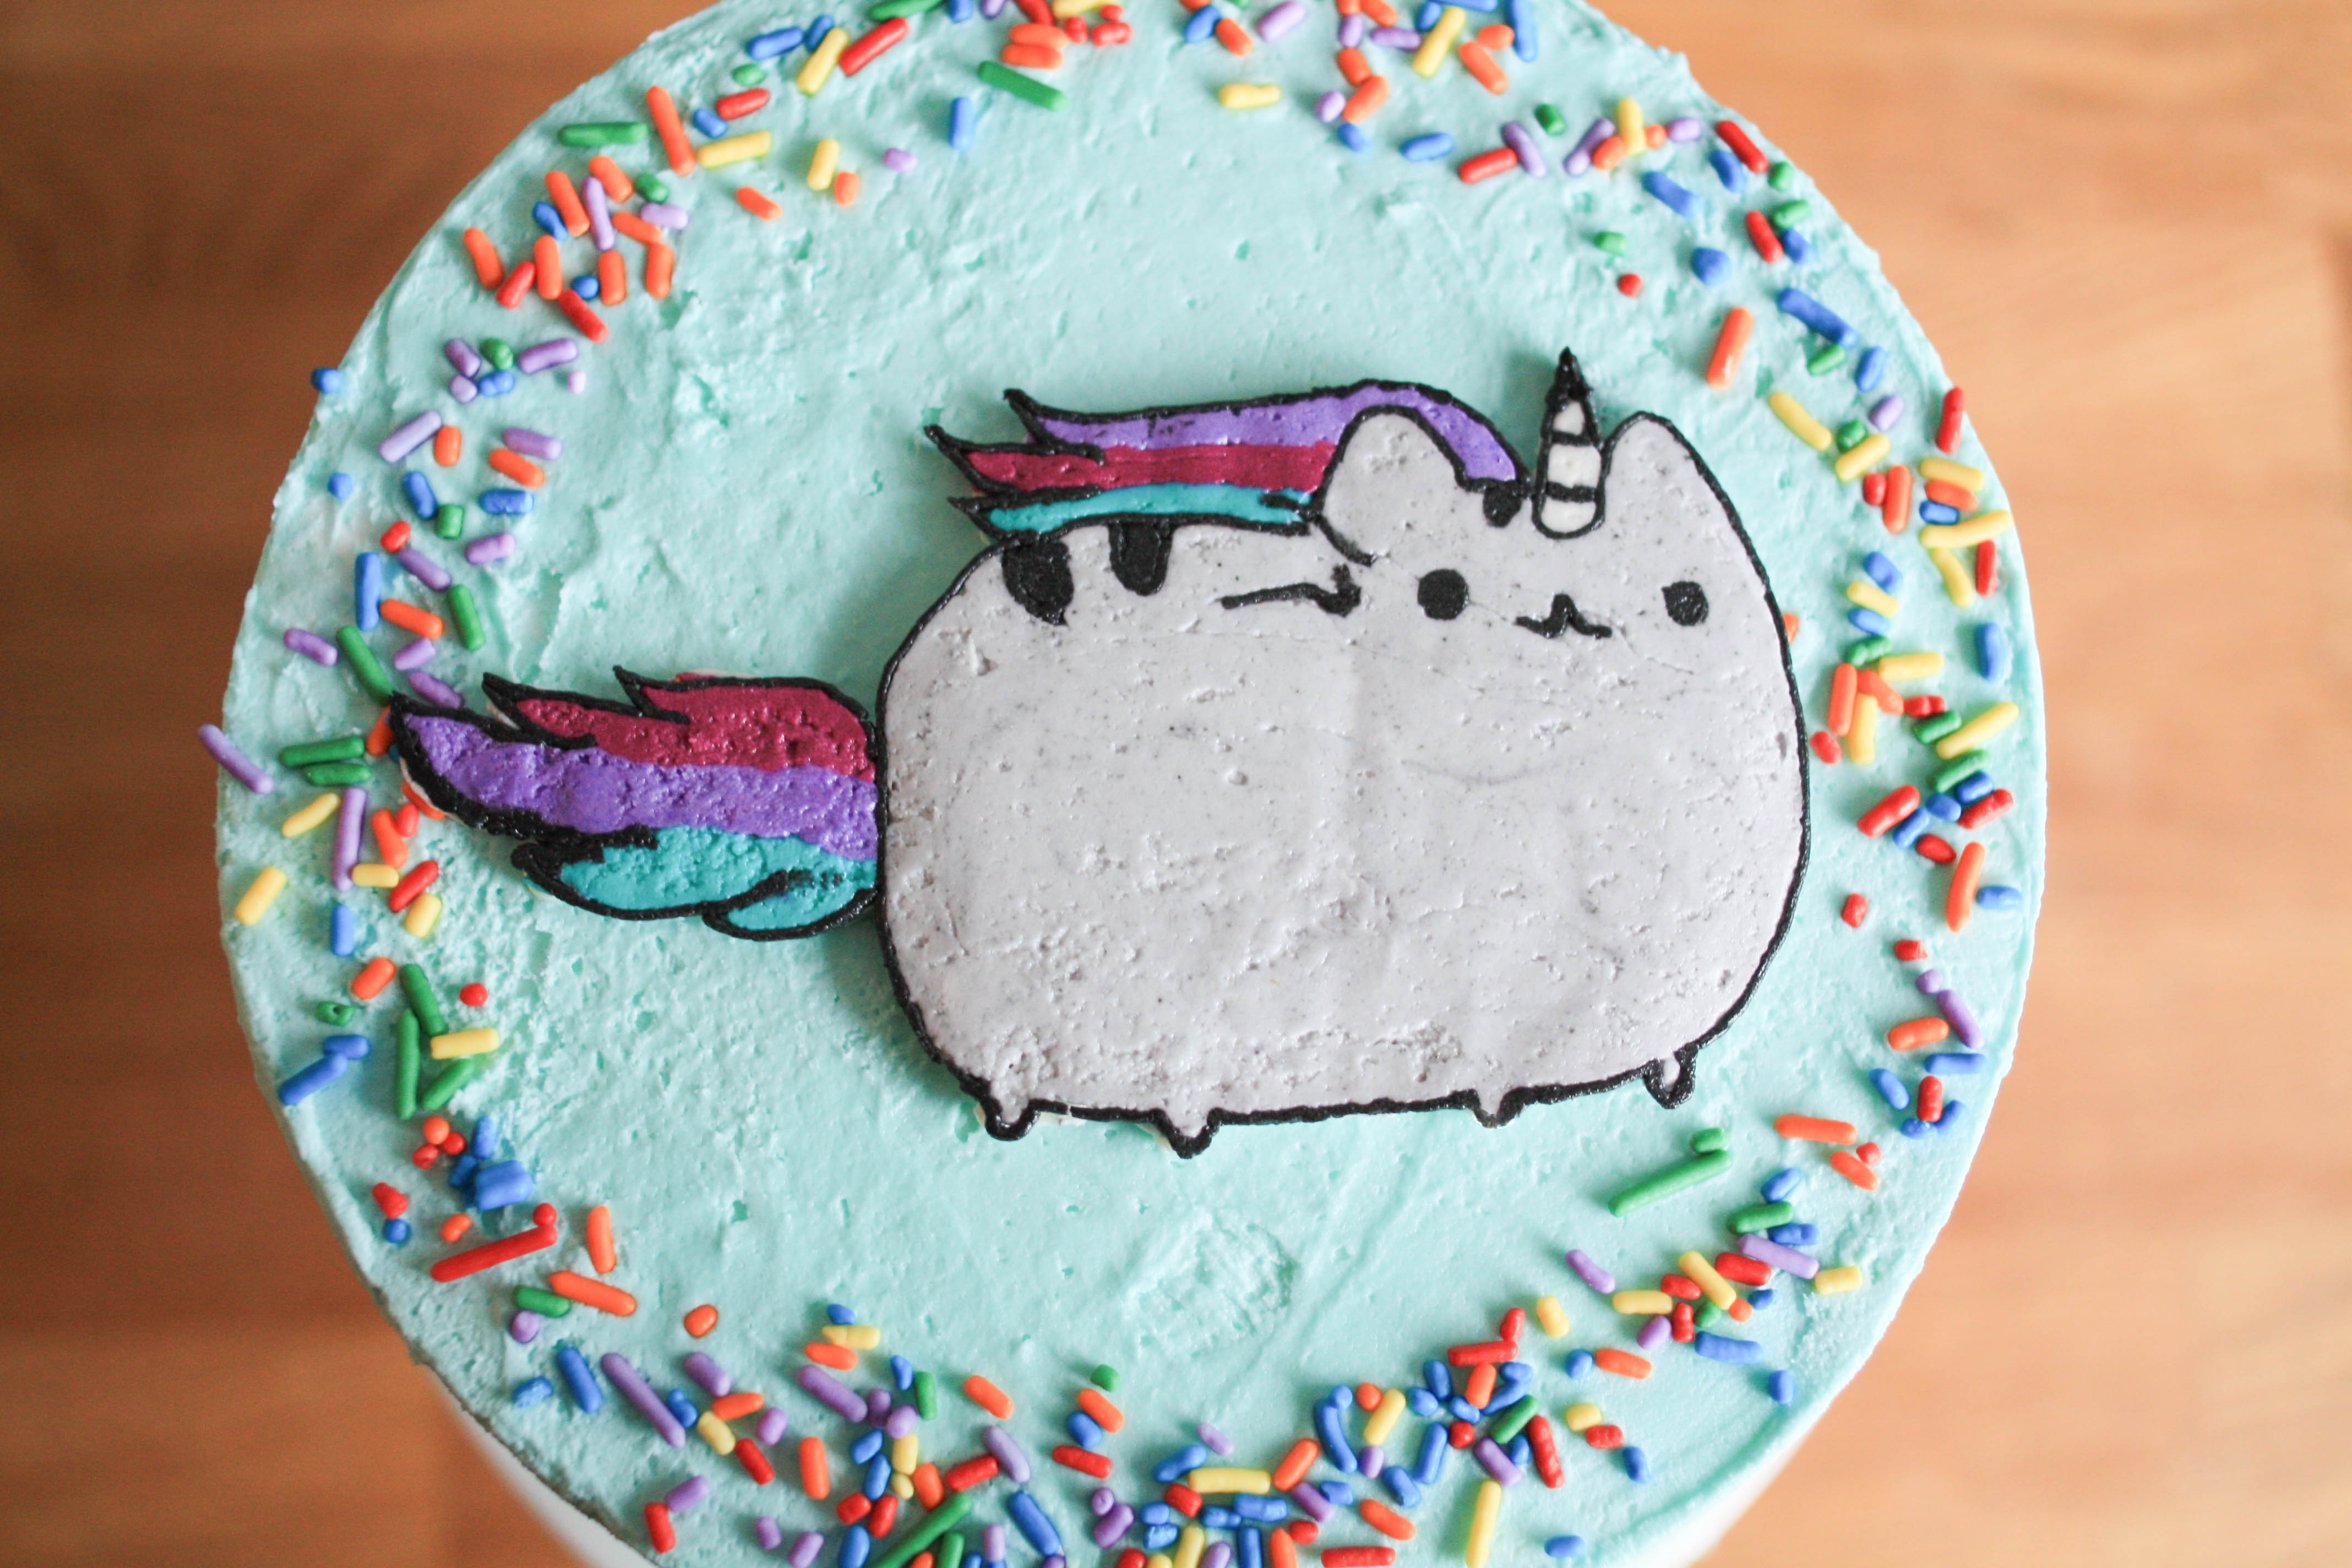 Finished Cake with a Cat Buttercream Transfer Image